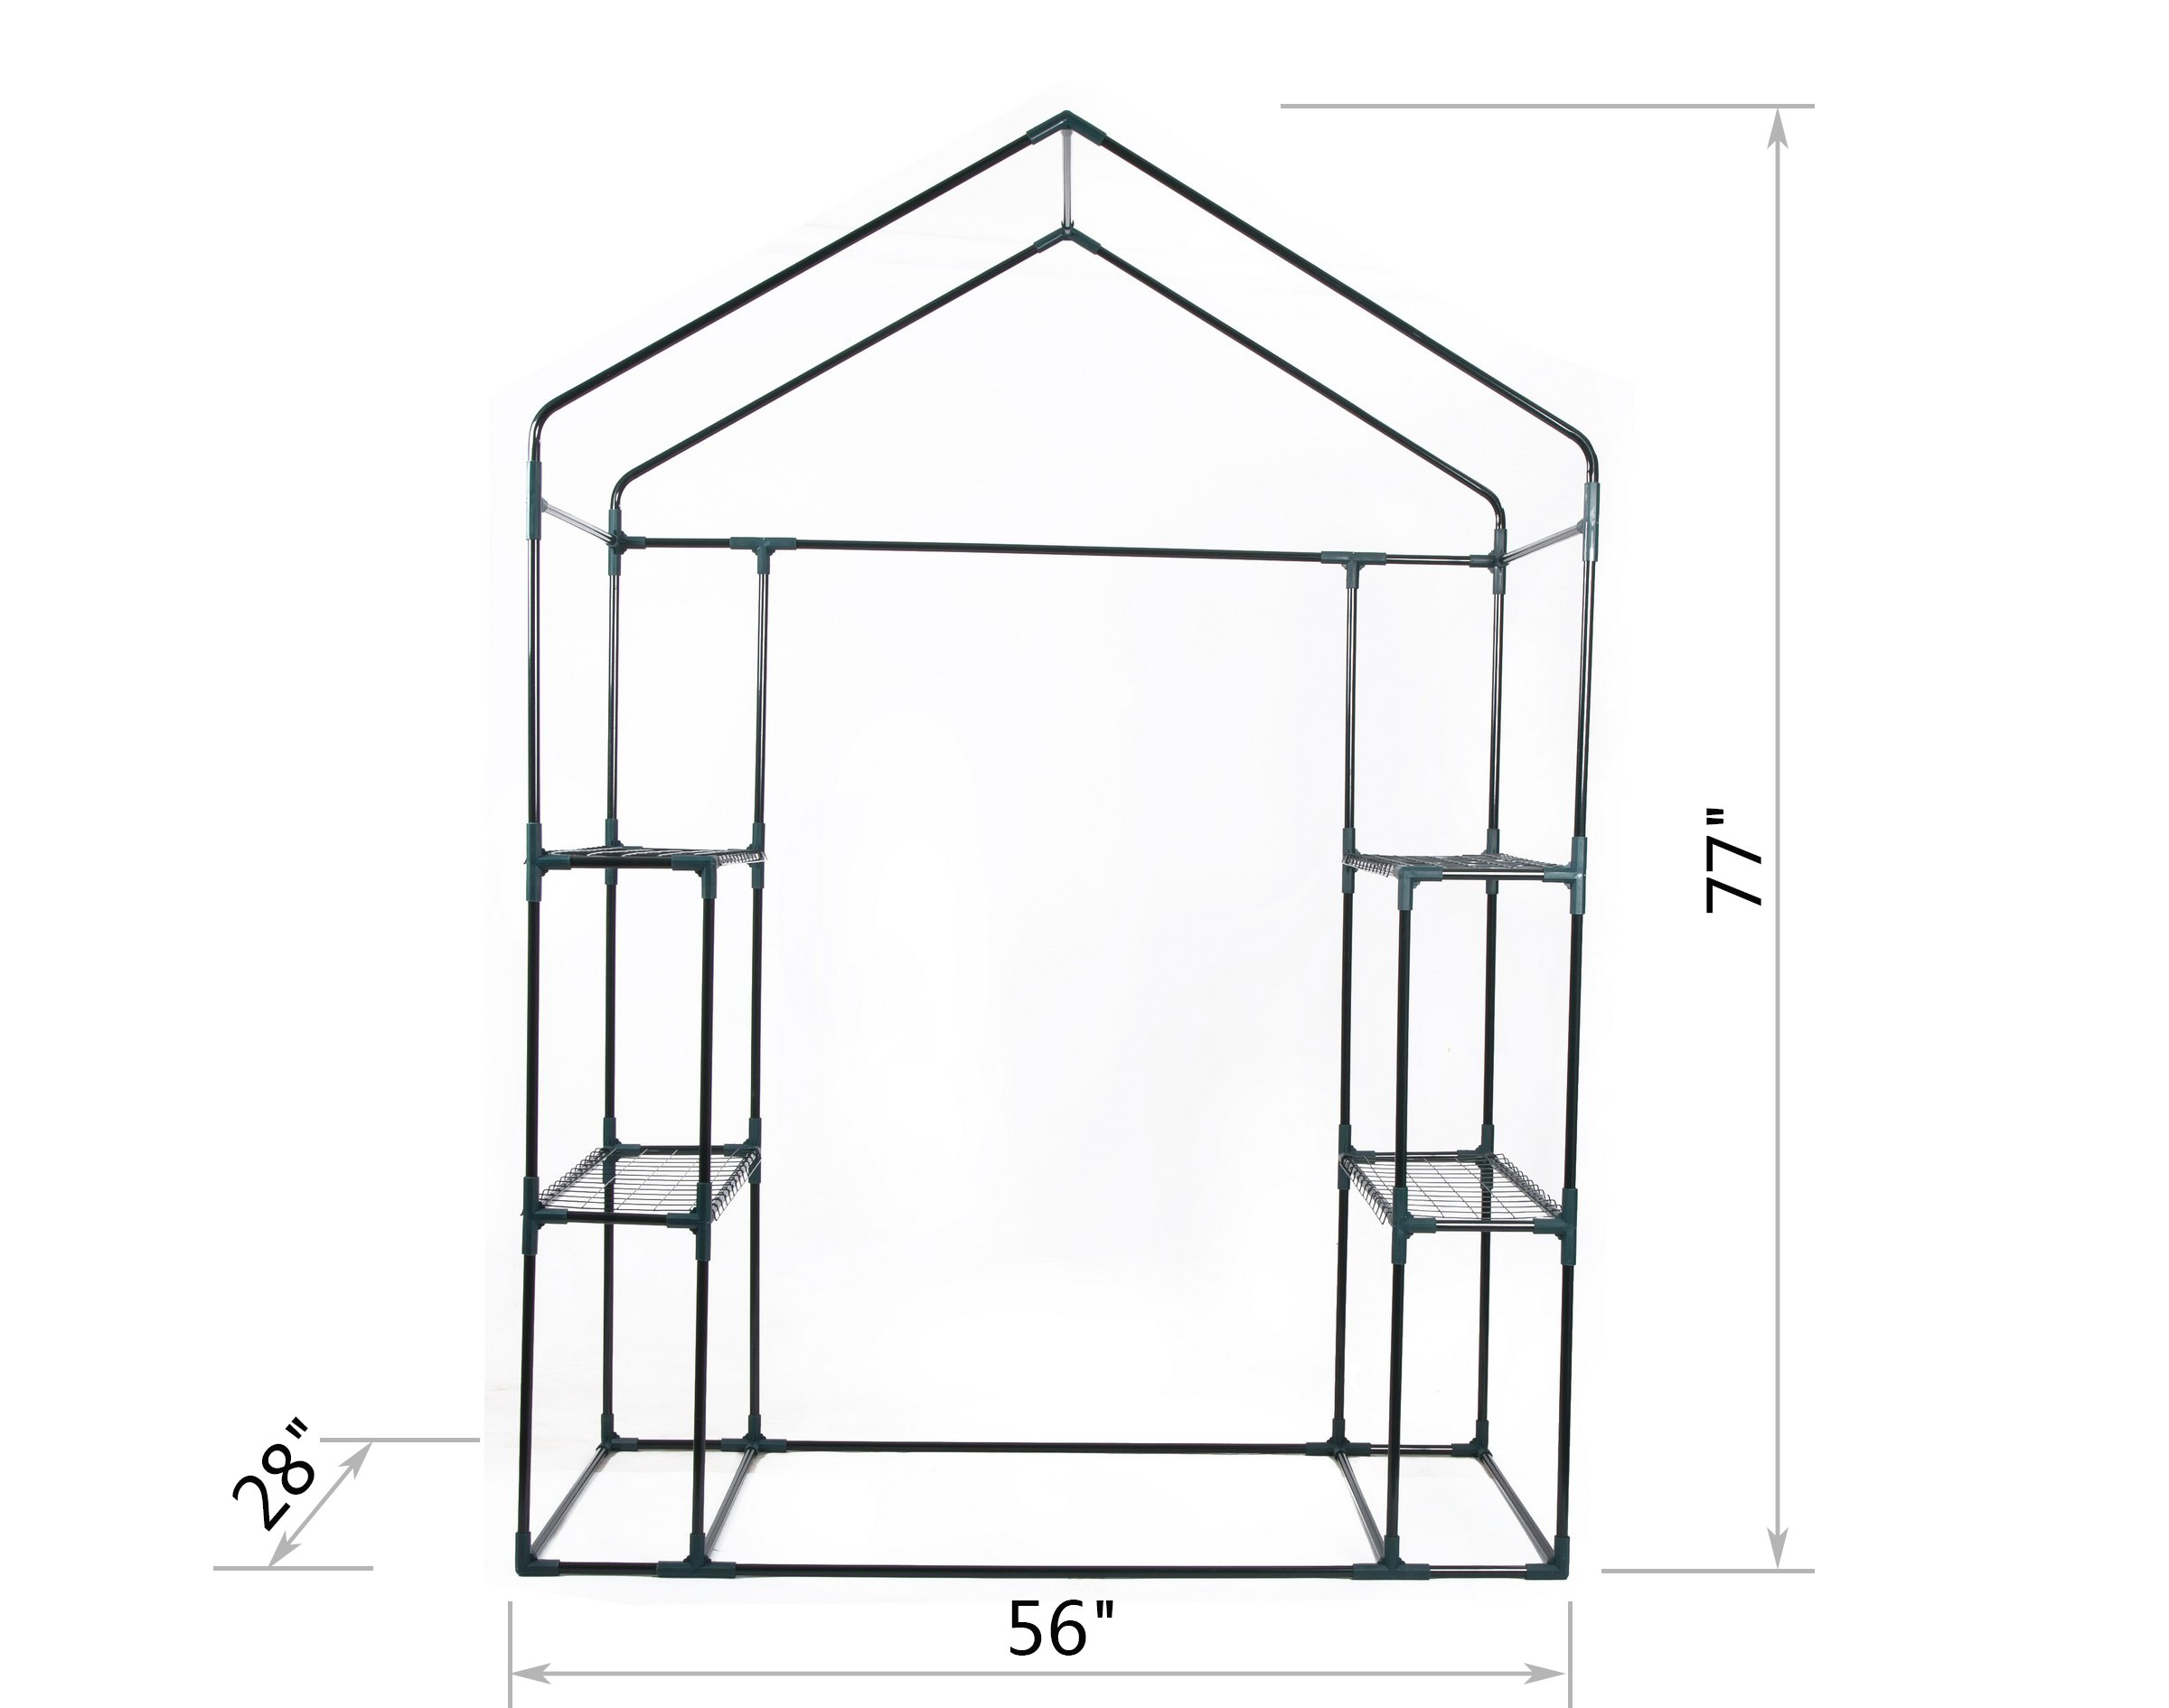 GOJOOASIS Walk in Portable Garden Greenhouse Mini Plants Shed Hot House with 3 Tiers by GOJOOASIS (Image #2)